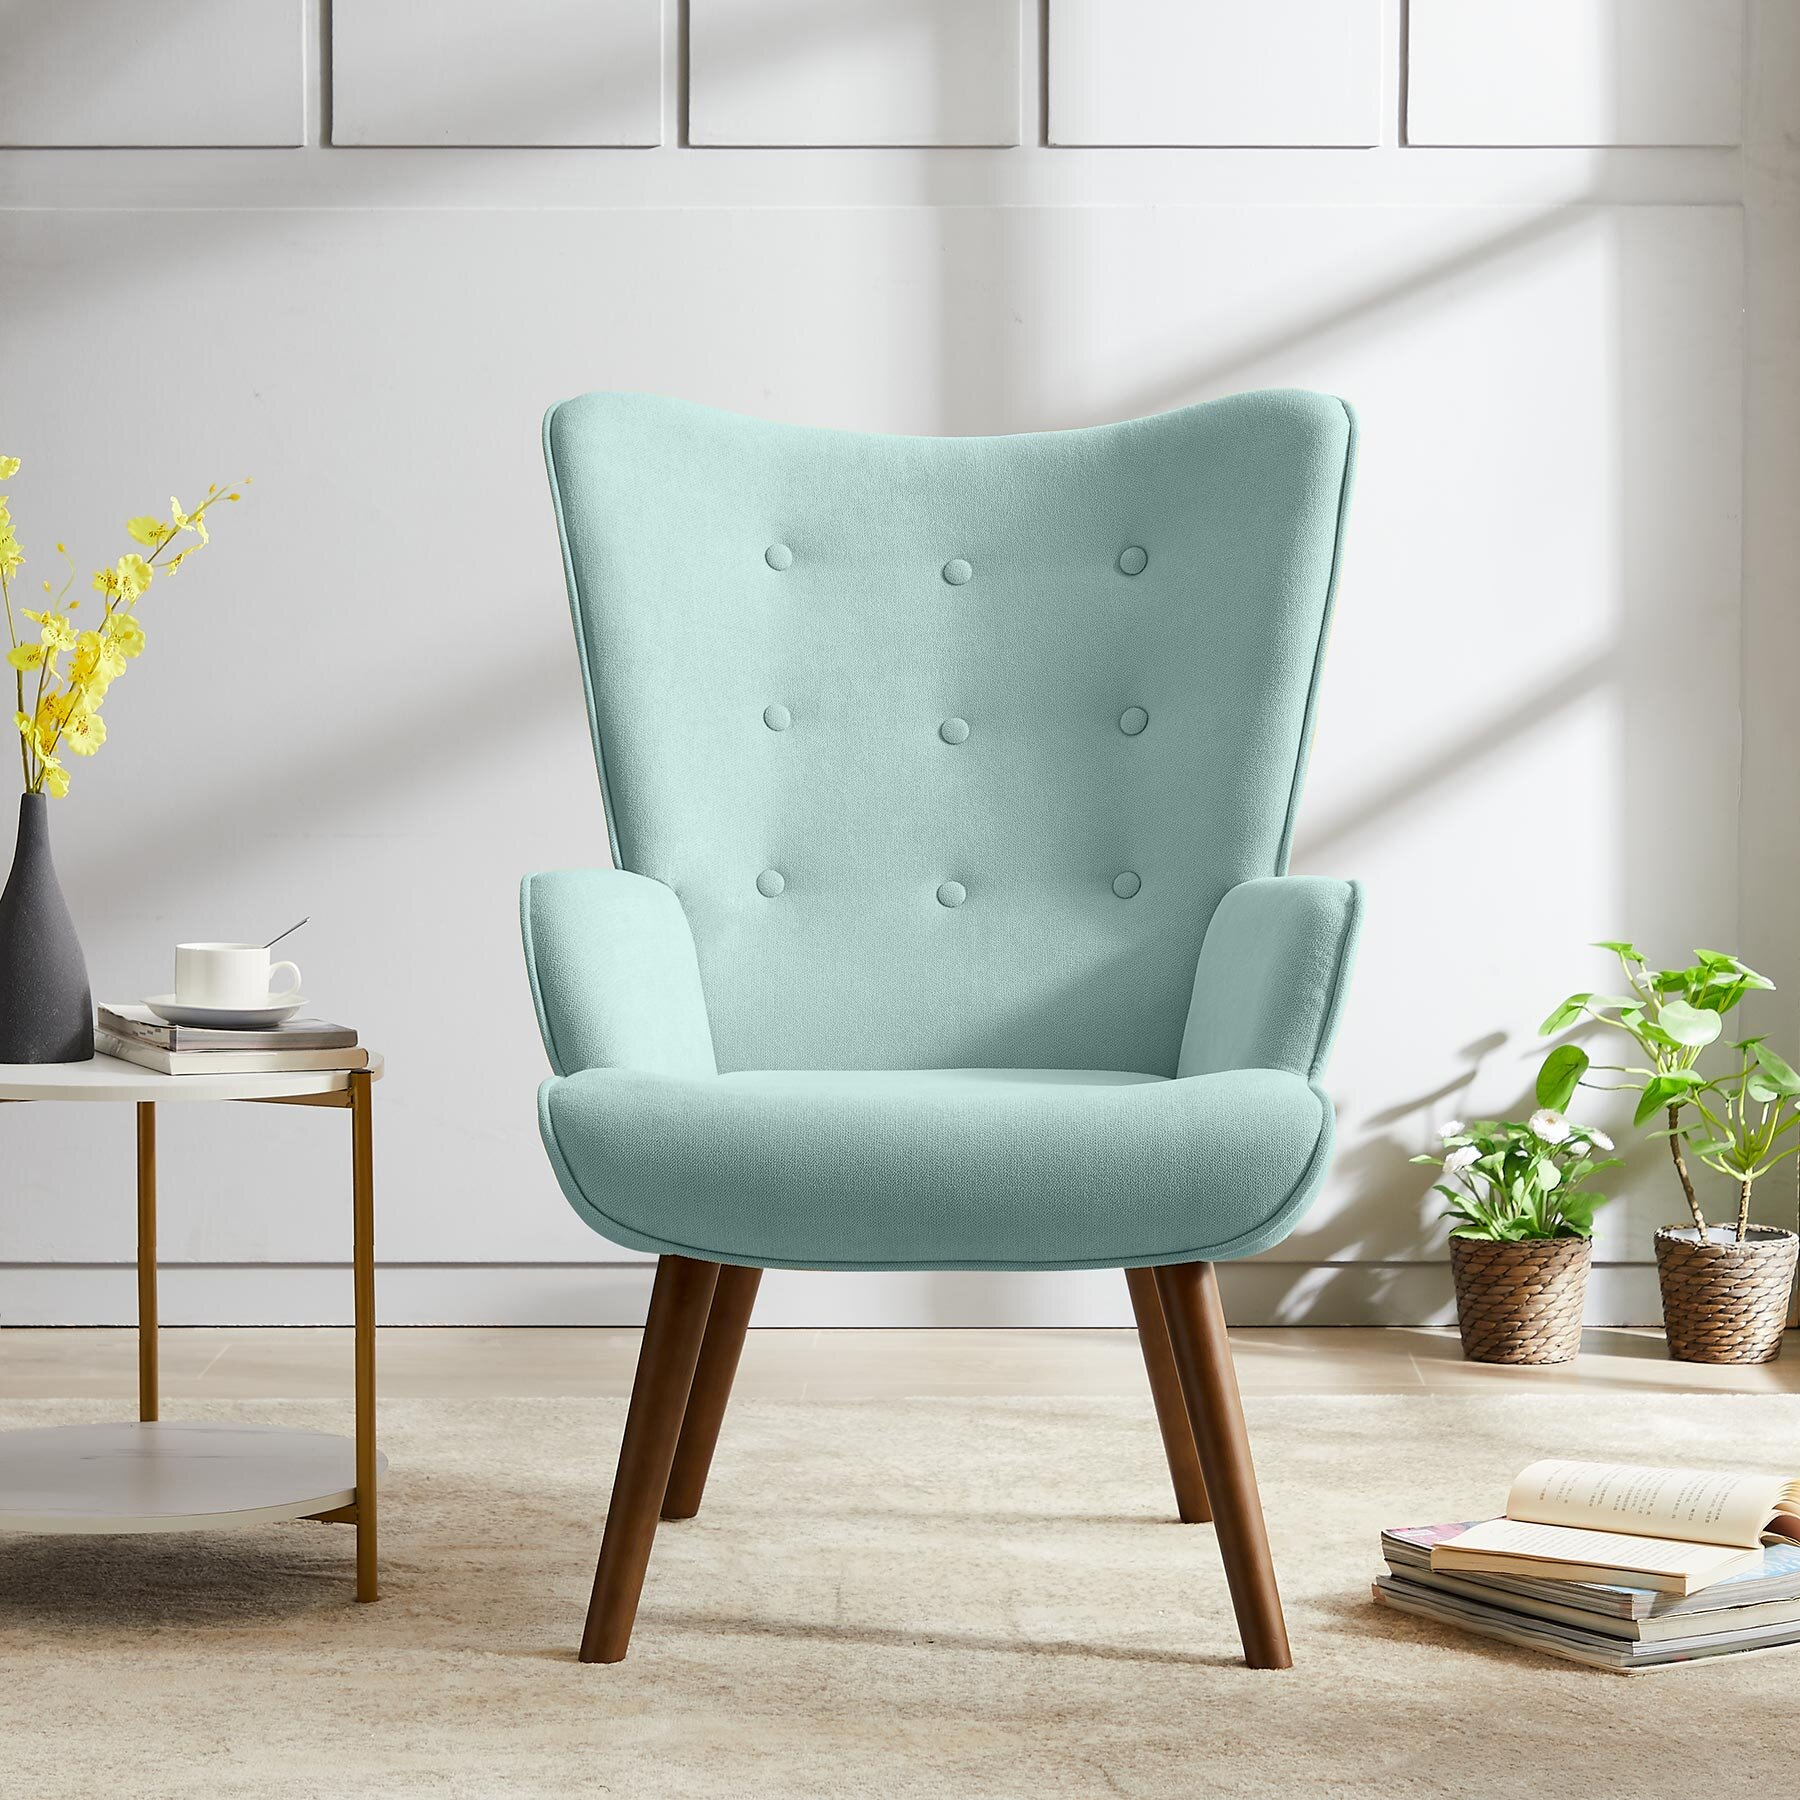 Arm Metal Accent Chairs You'Ll Love In 2021 | Wayfair Throughout Lakeville Armchairs (View 15 of 15)